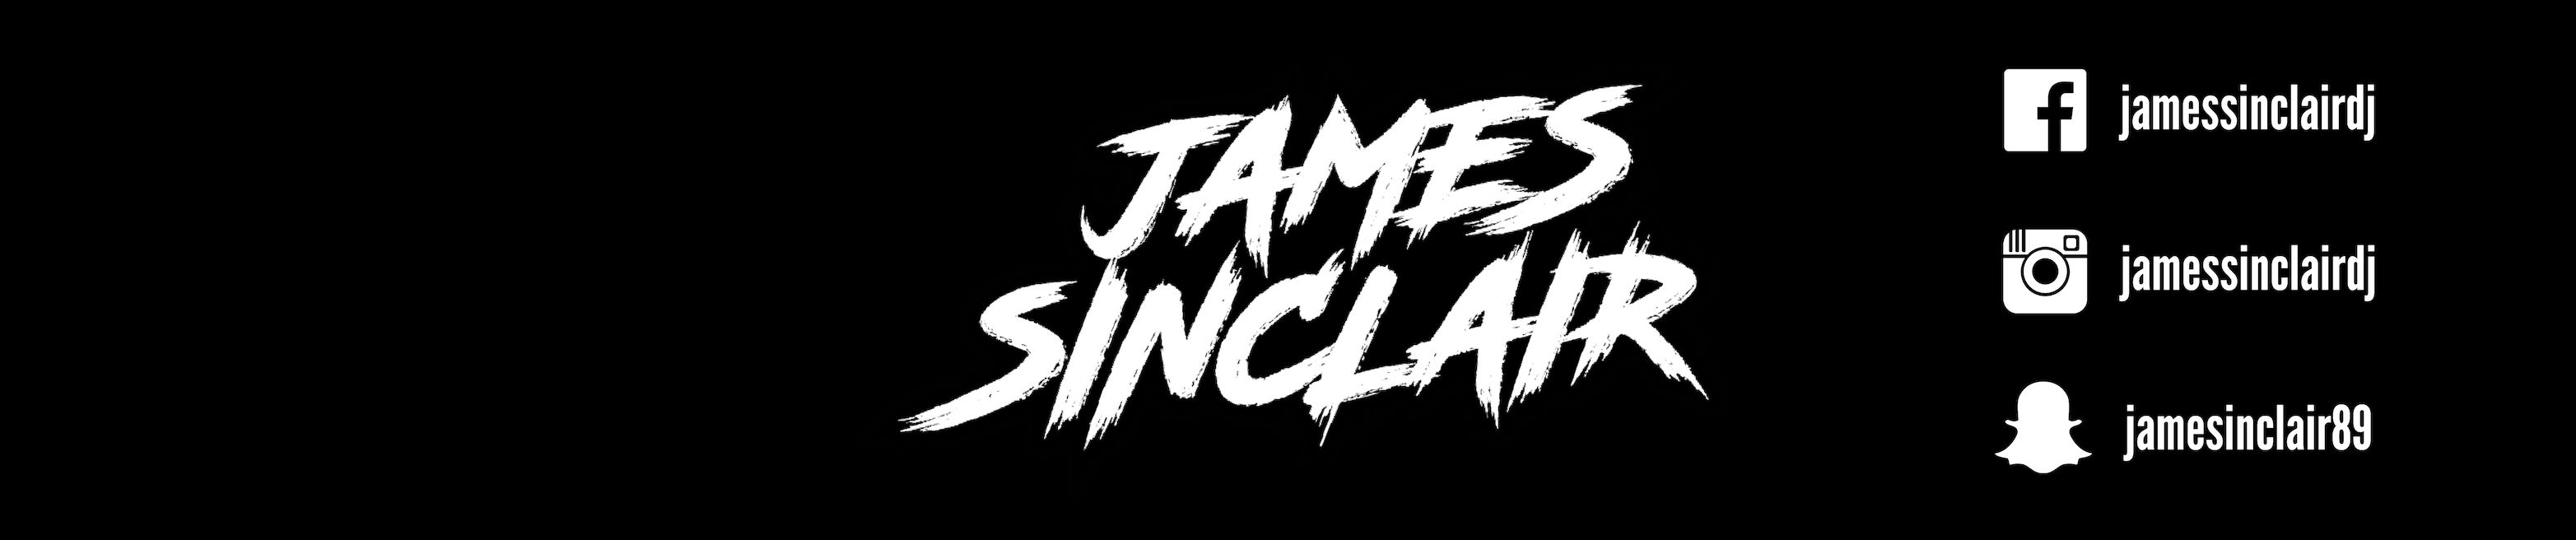 RNB EXTENDED EDITS VOL  1 (Free Download) by James Sinclair